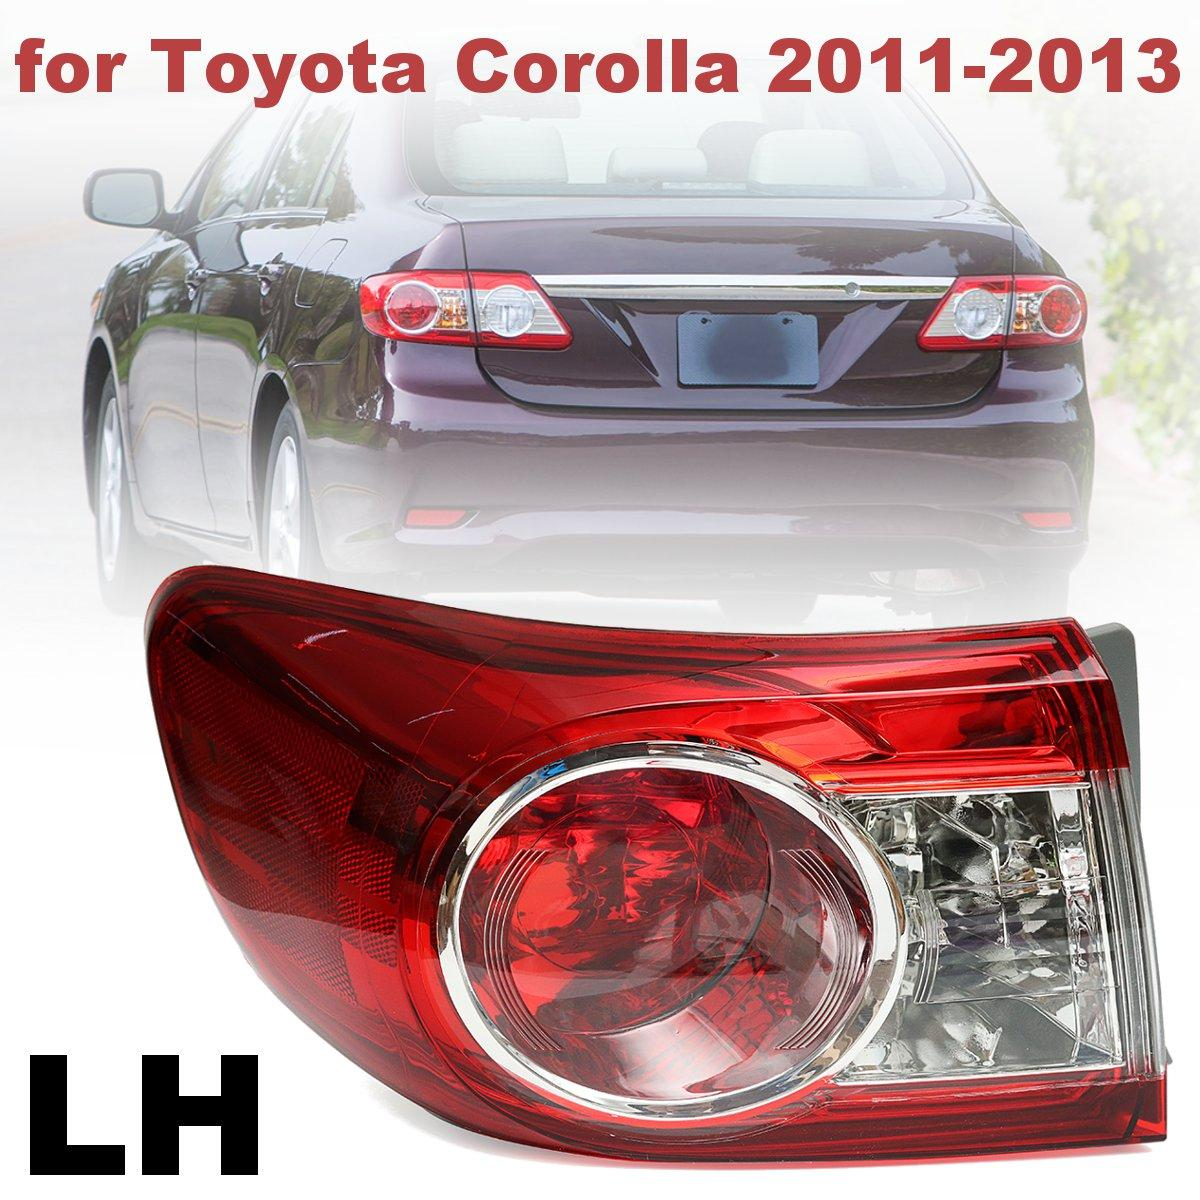 #TO2804111 #81560-02580 PMMA Replacement Red Driver Rear Left Side Tail Light Brake Lamp for Toyota Corolla 2011 2012 2013 free shipping 2pc hexagon pattern abstract geometric body rear tail side graphic vinyl for toyota hilux vigo 2011 decals